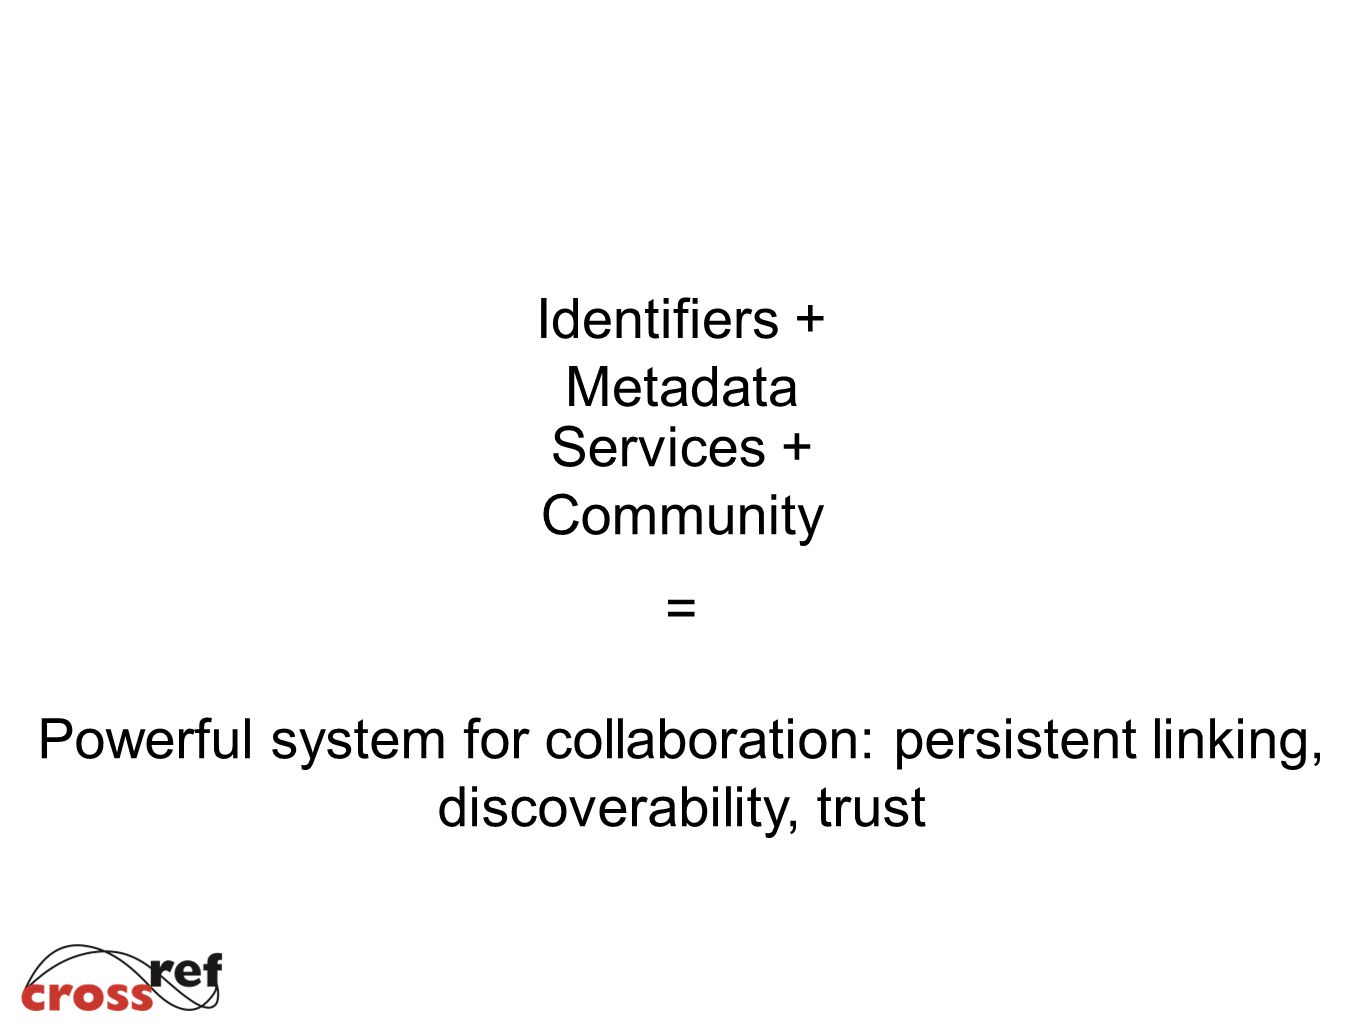 Identifiers + Metadata Services + Community = Powerful system for collaboration: persistent linking, discoverability, trust